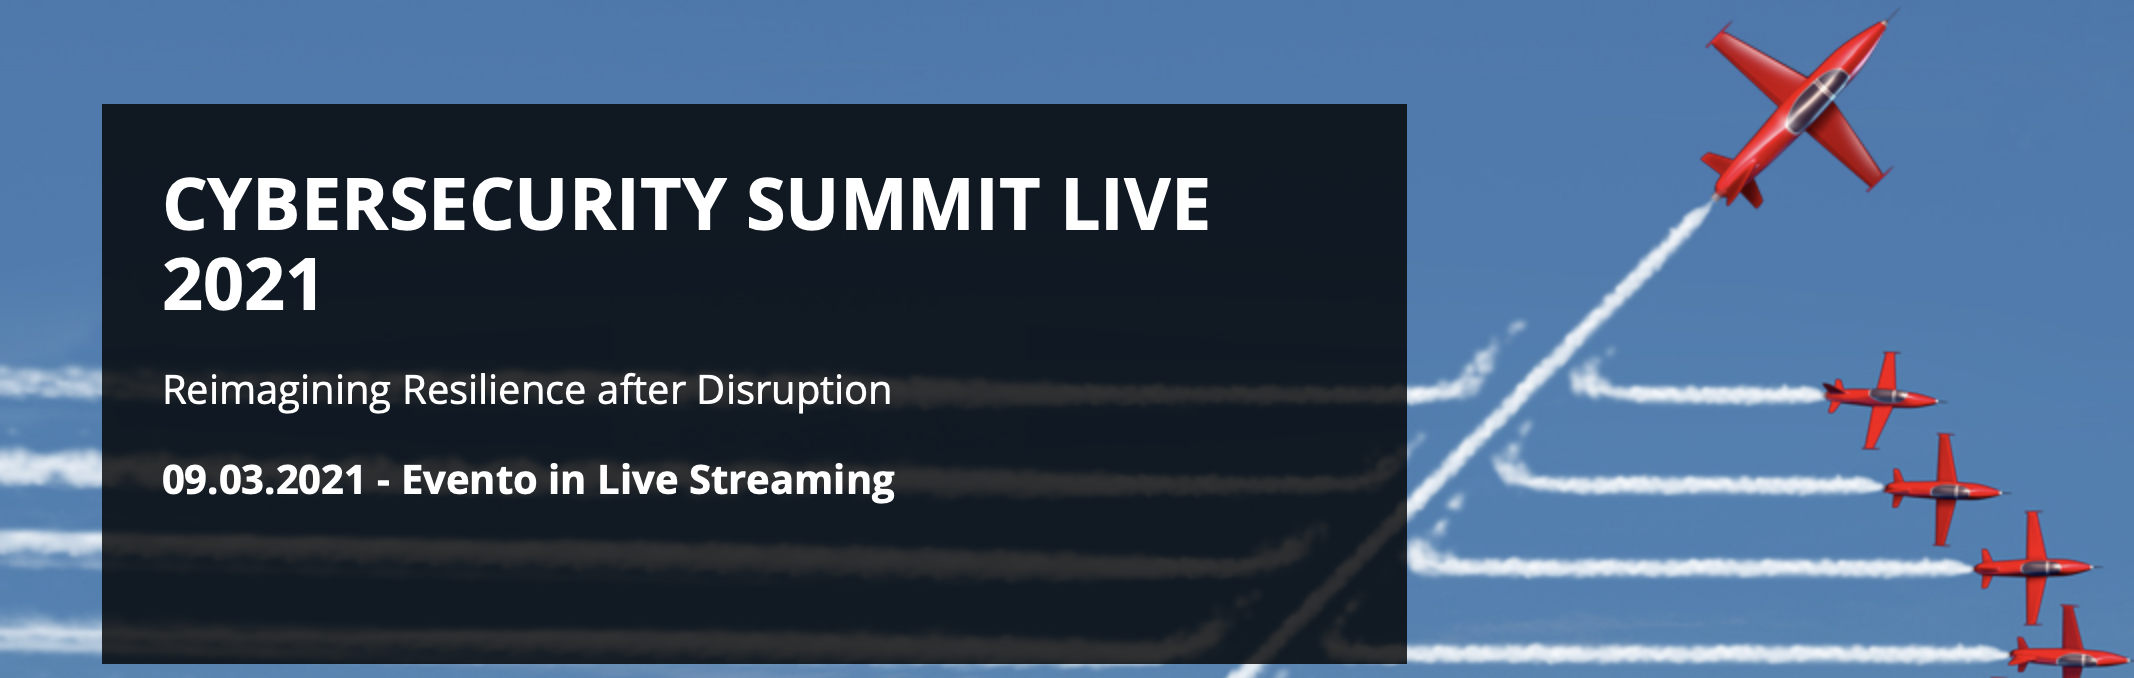 Cybersecurity Summit Live 2021